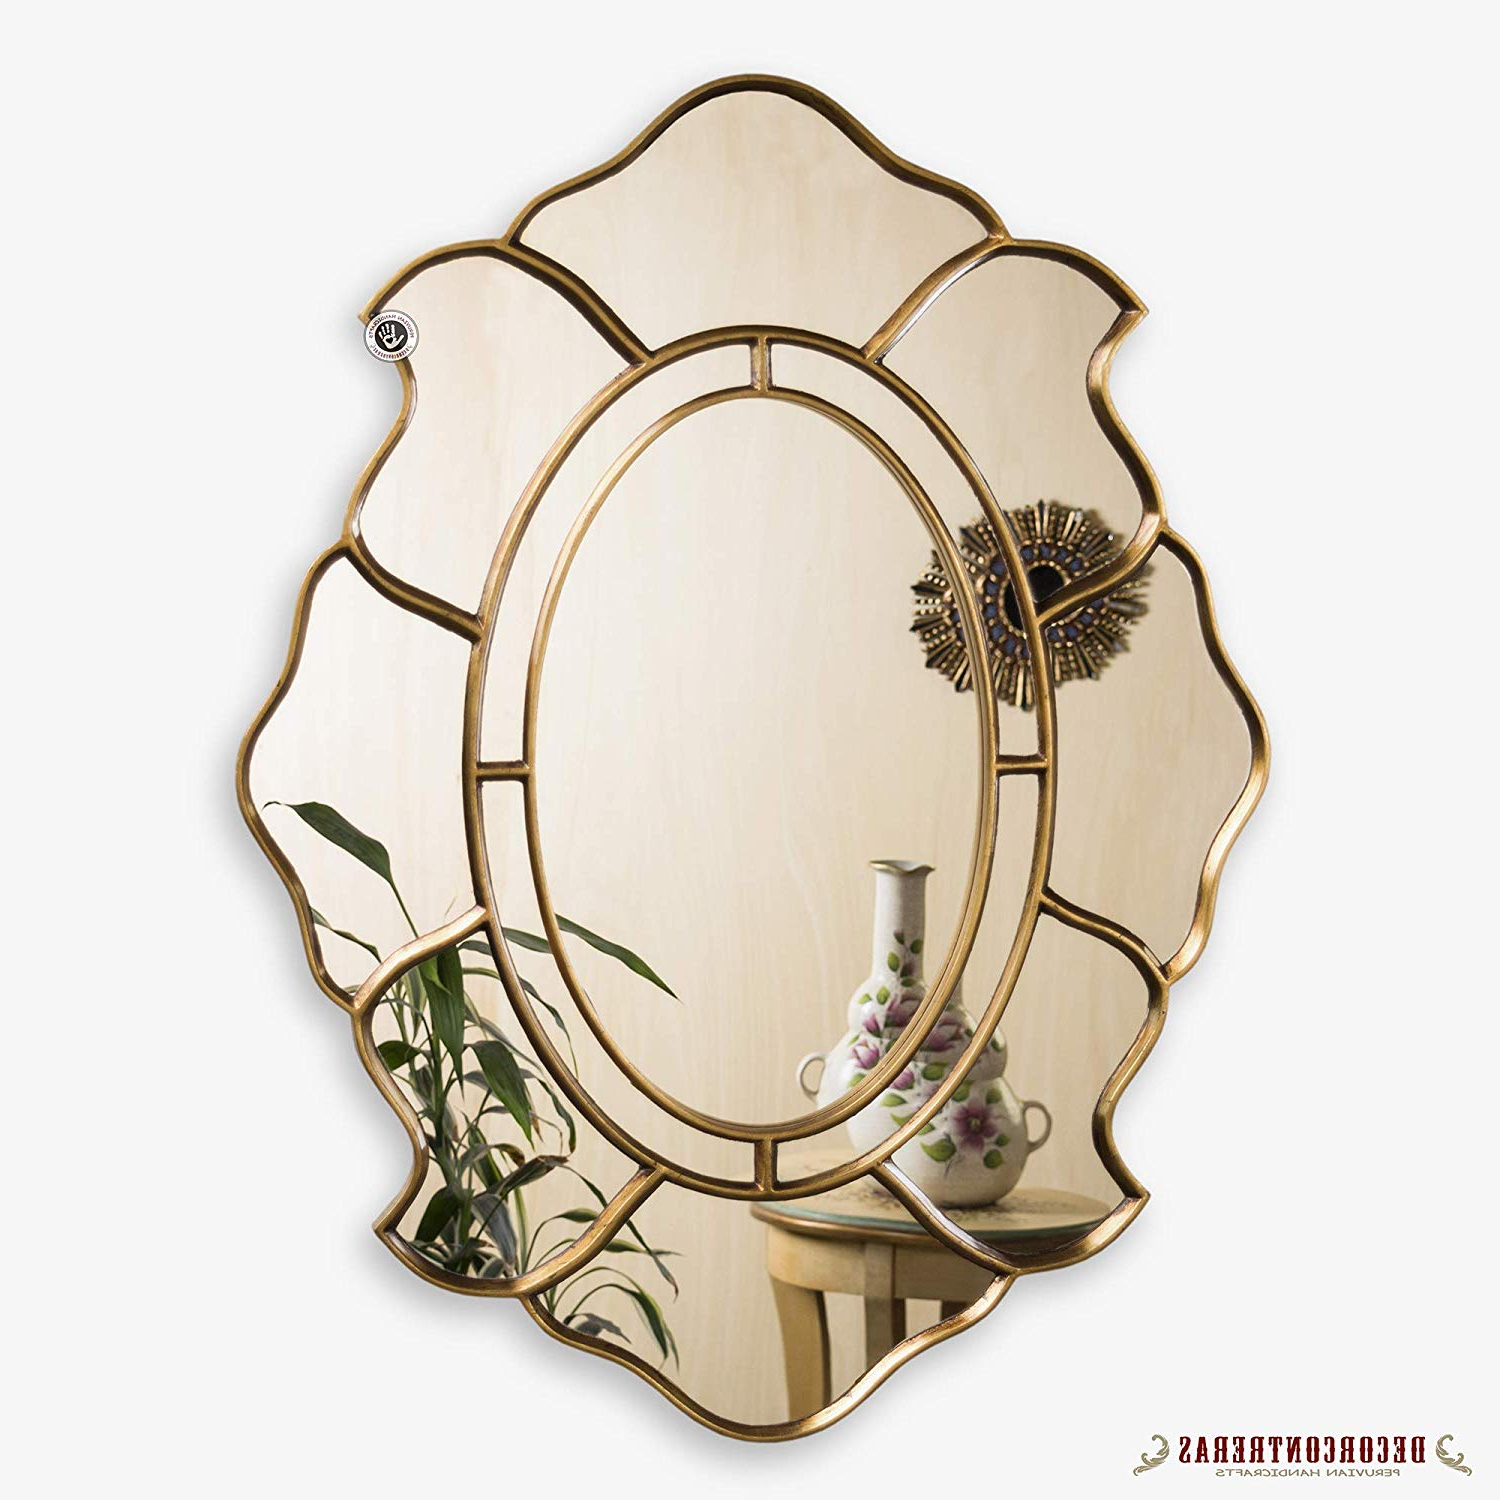 Newest Accent Mirrors Within Amazon: Gold Oval Accent Wall Mirror, Decorative Oval Mirror For (Gallery 10 of 20)